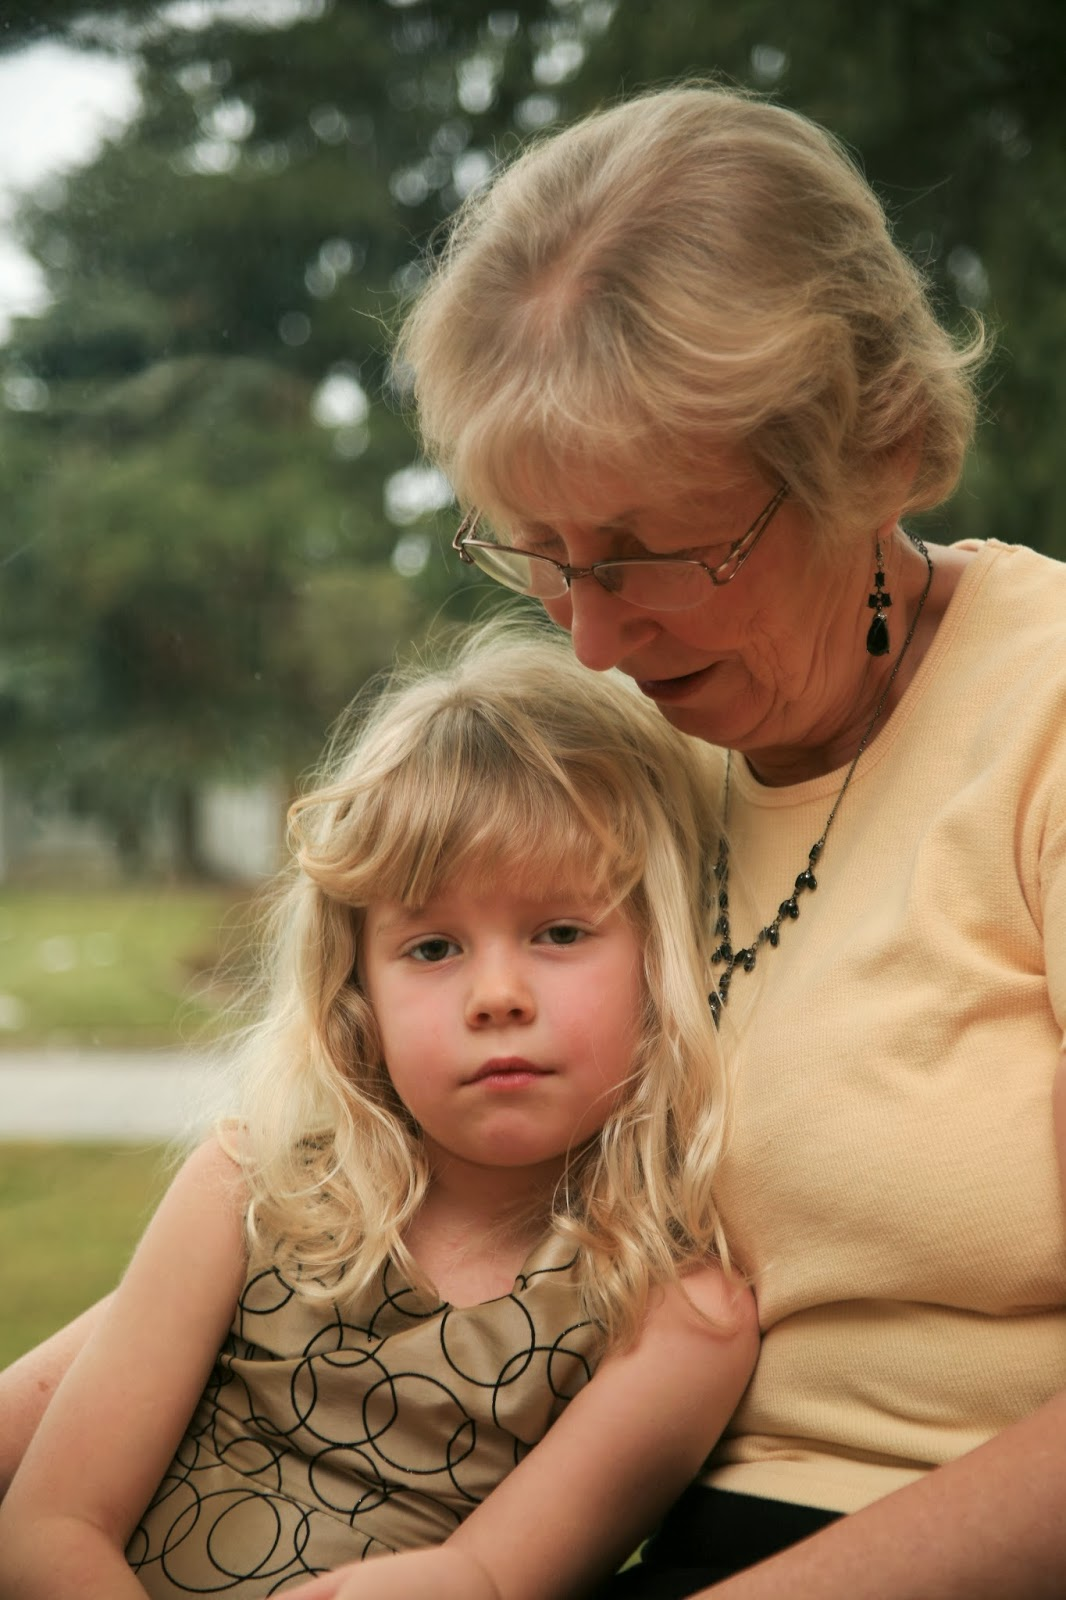 grandparents raising grandchildren Nationwide, 27 million grandparents are raising grandchildren, and about one-fifth of those have incomes that fall below the poverty line, according to census figures.